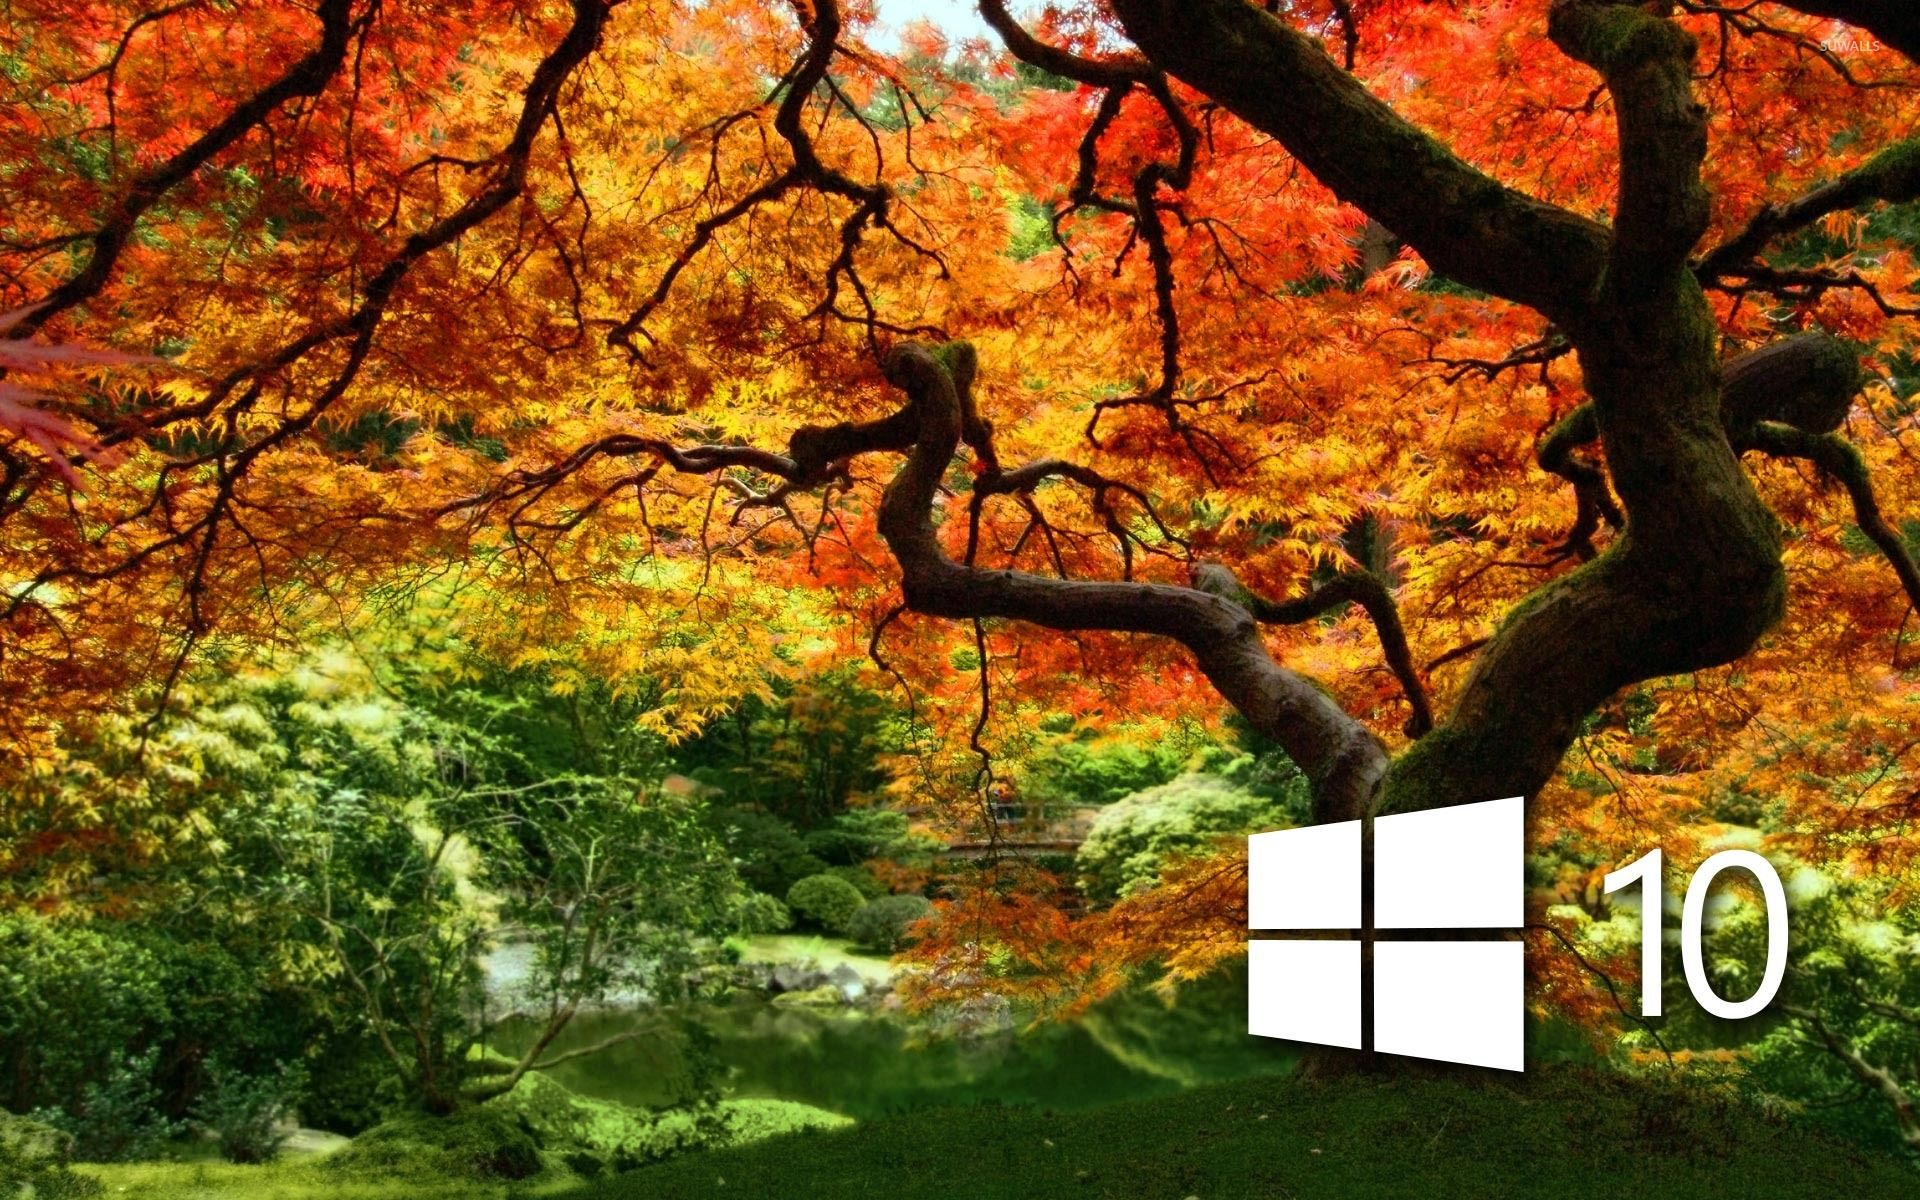 Windows 10 Wallpaper Autumn Mywallpapers Site Wallpaper Nature Wallpaper Art Wallpaper